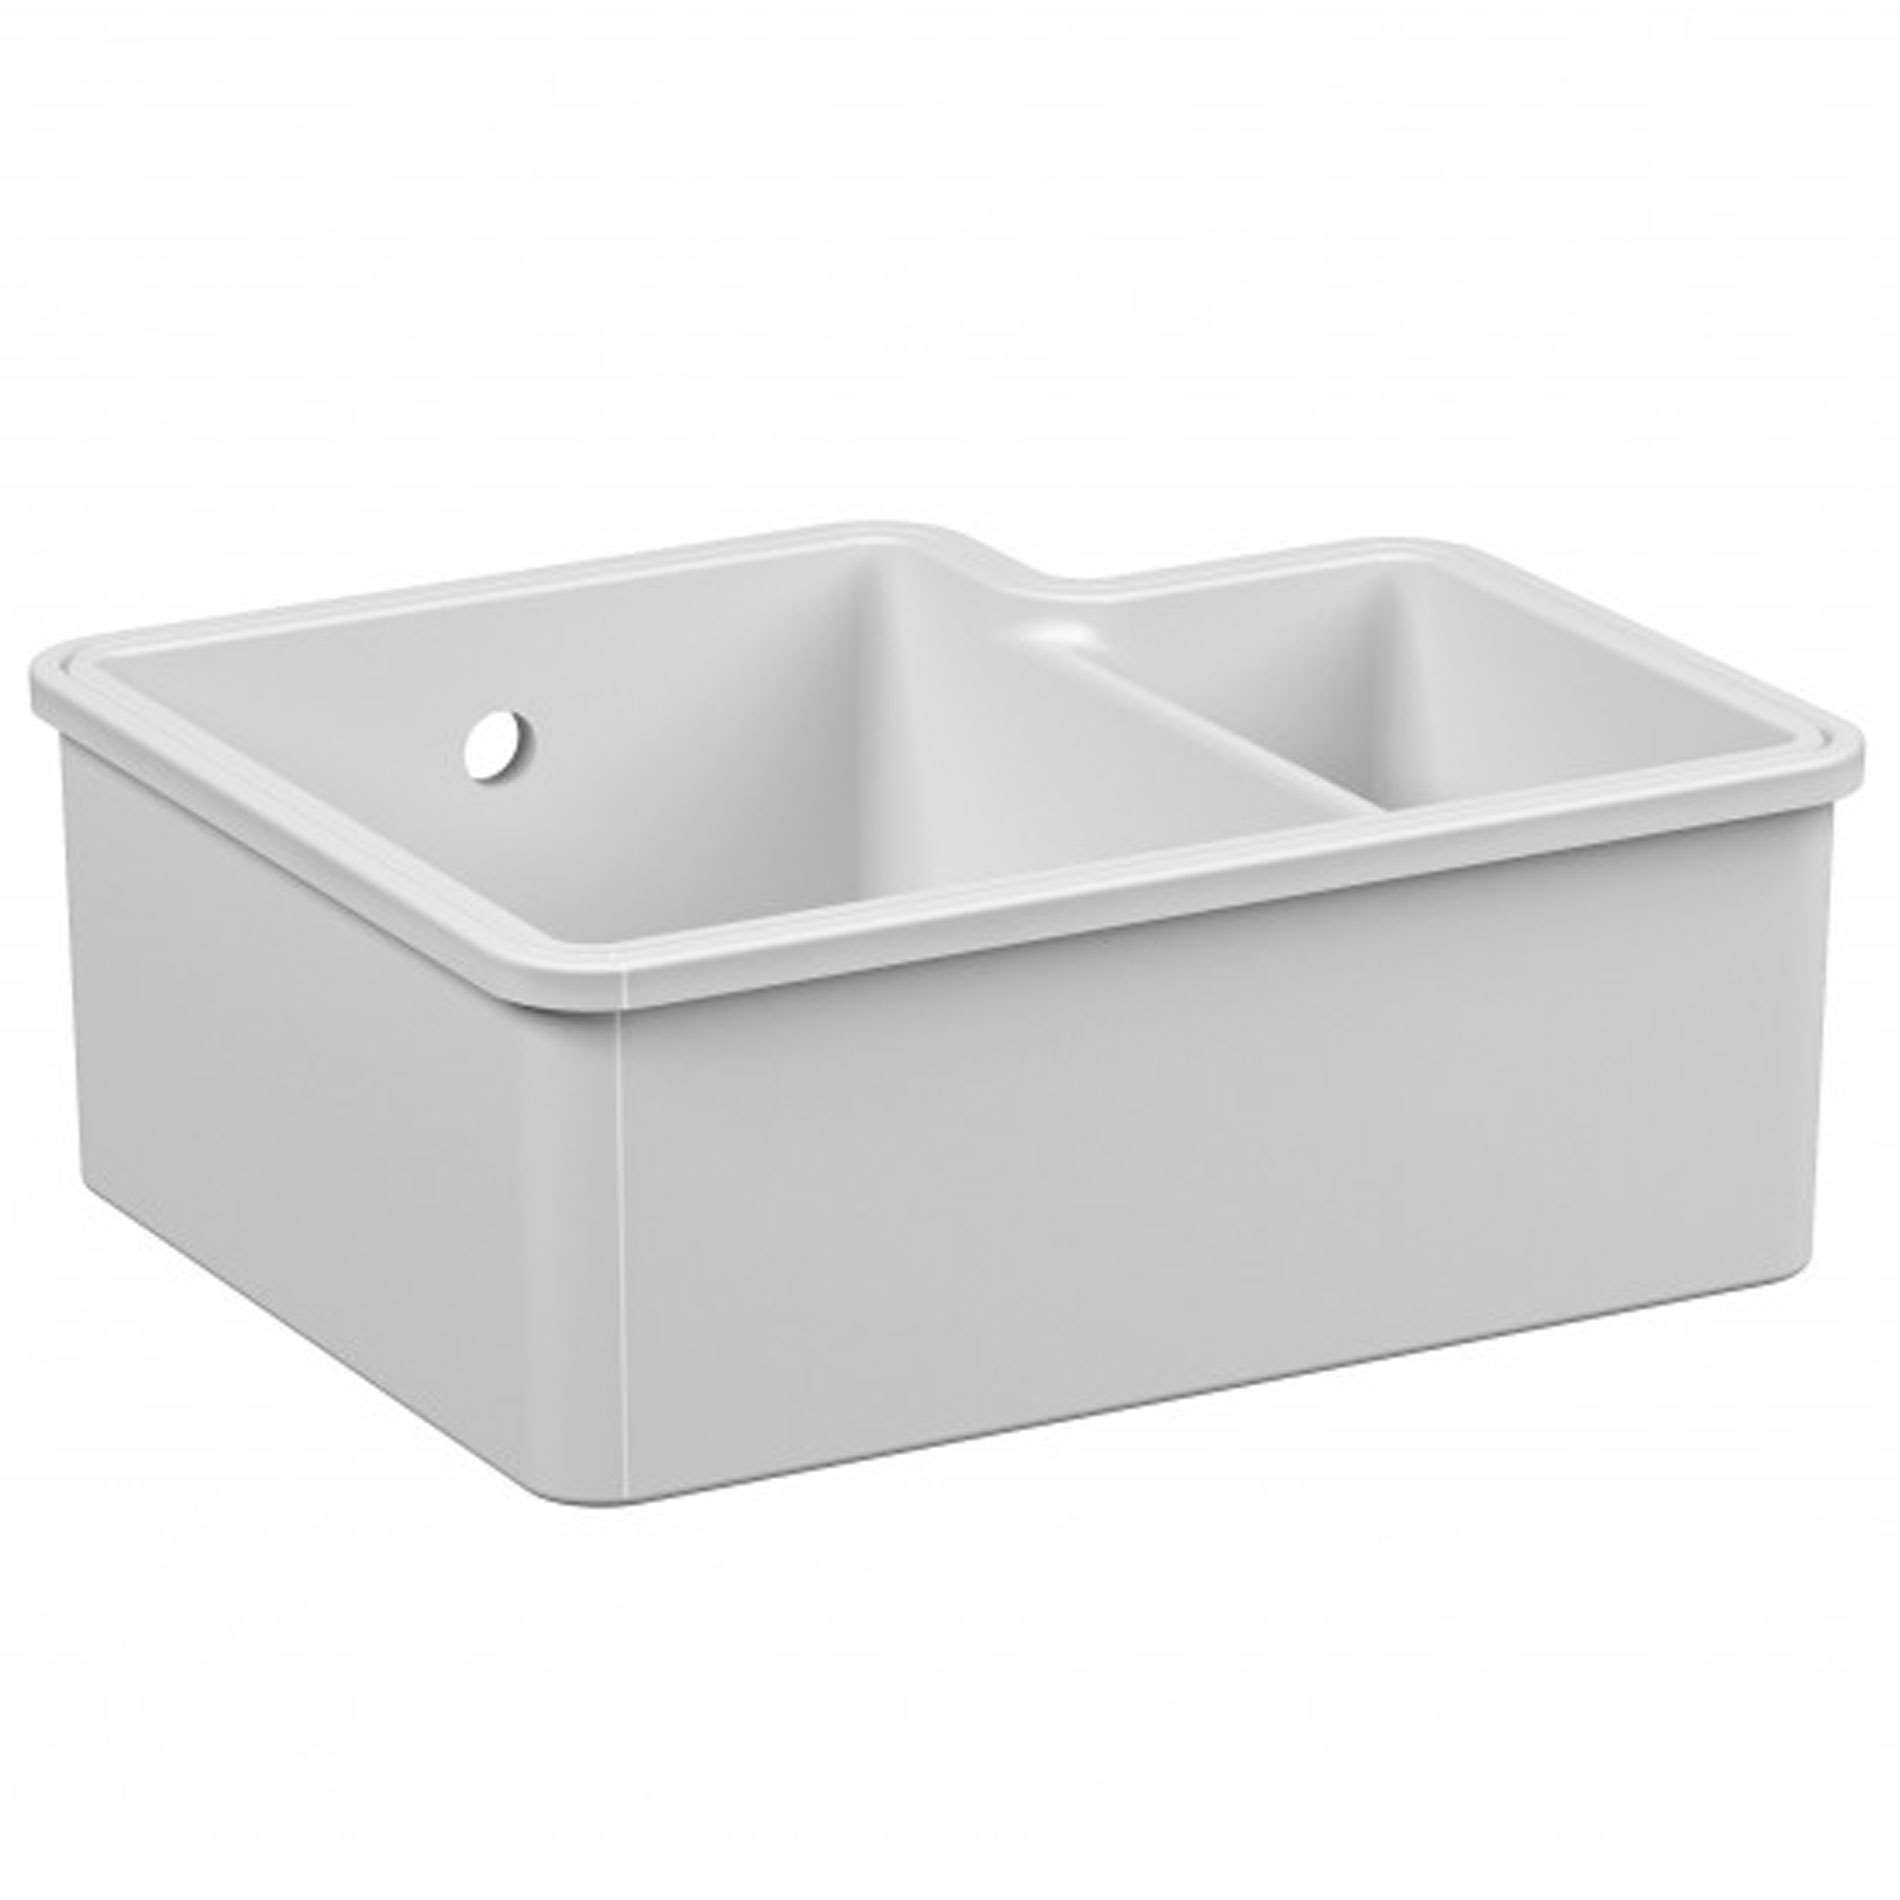 Picture of Tuscany Ceramic Sink and Elbe Tap Pack